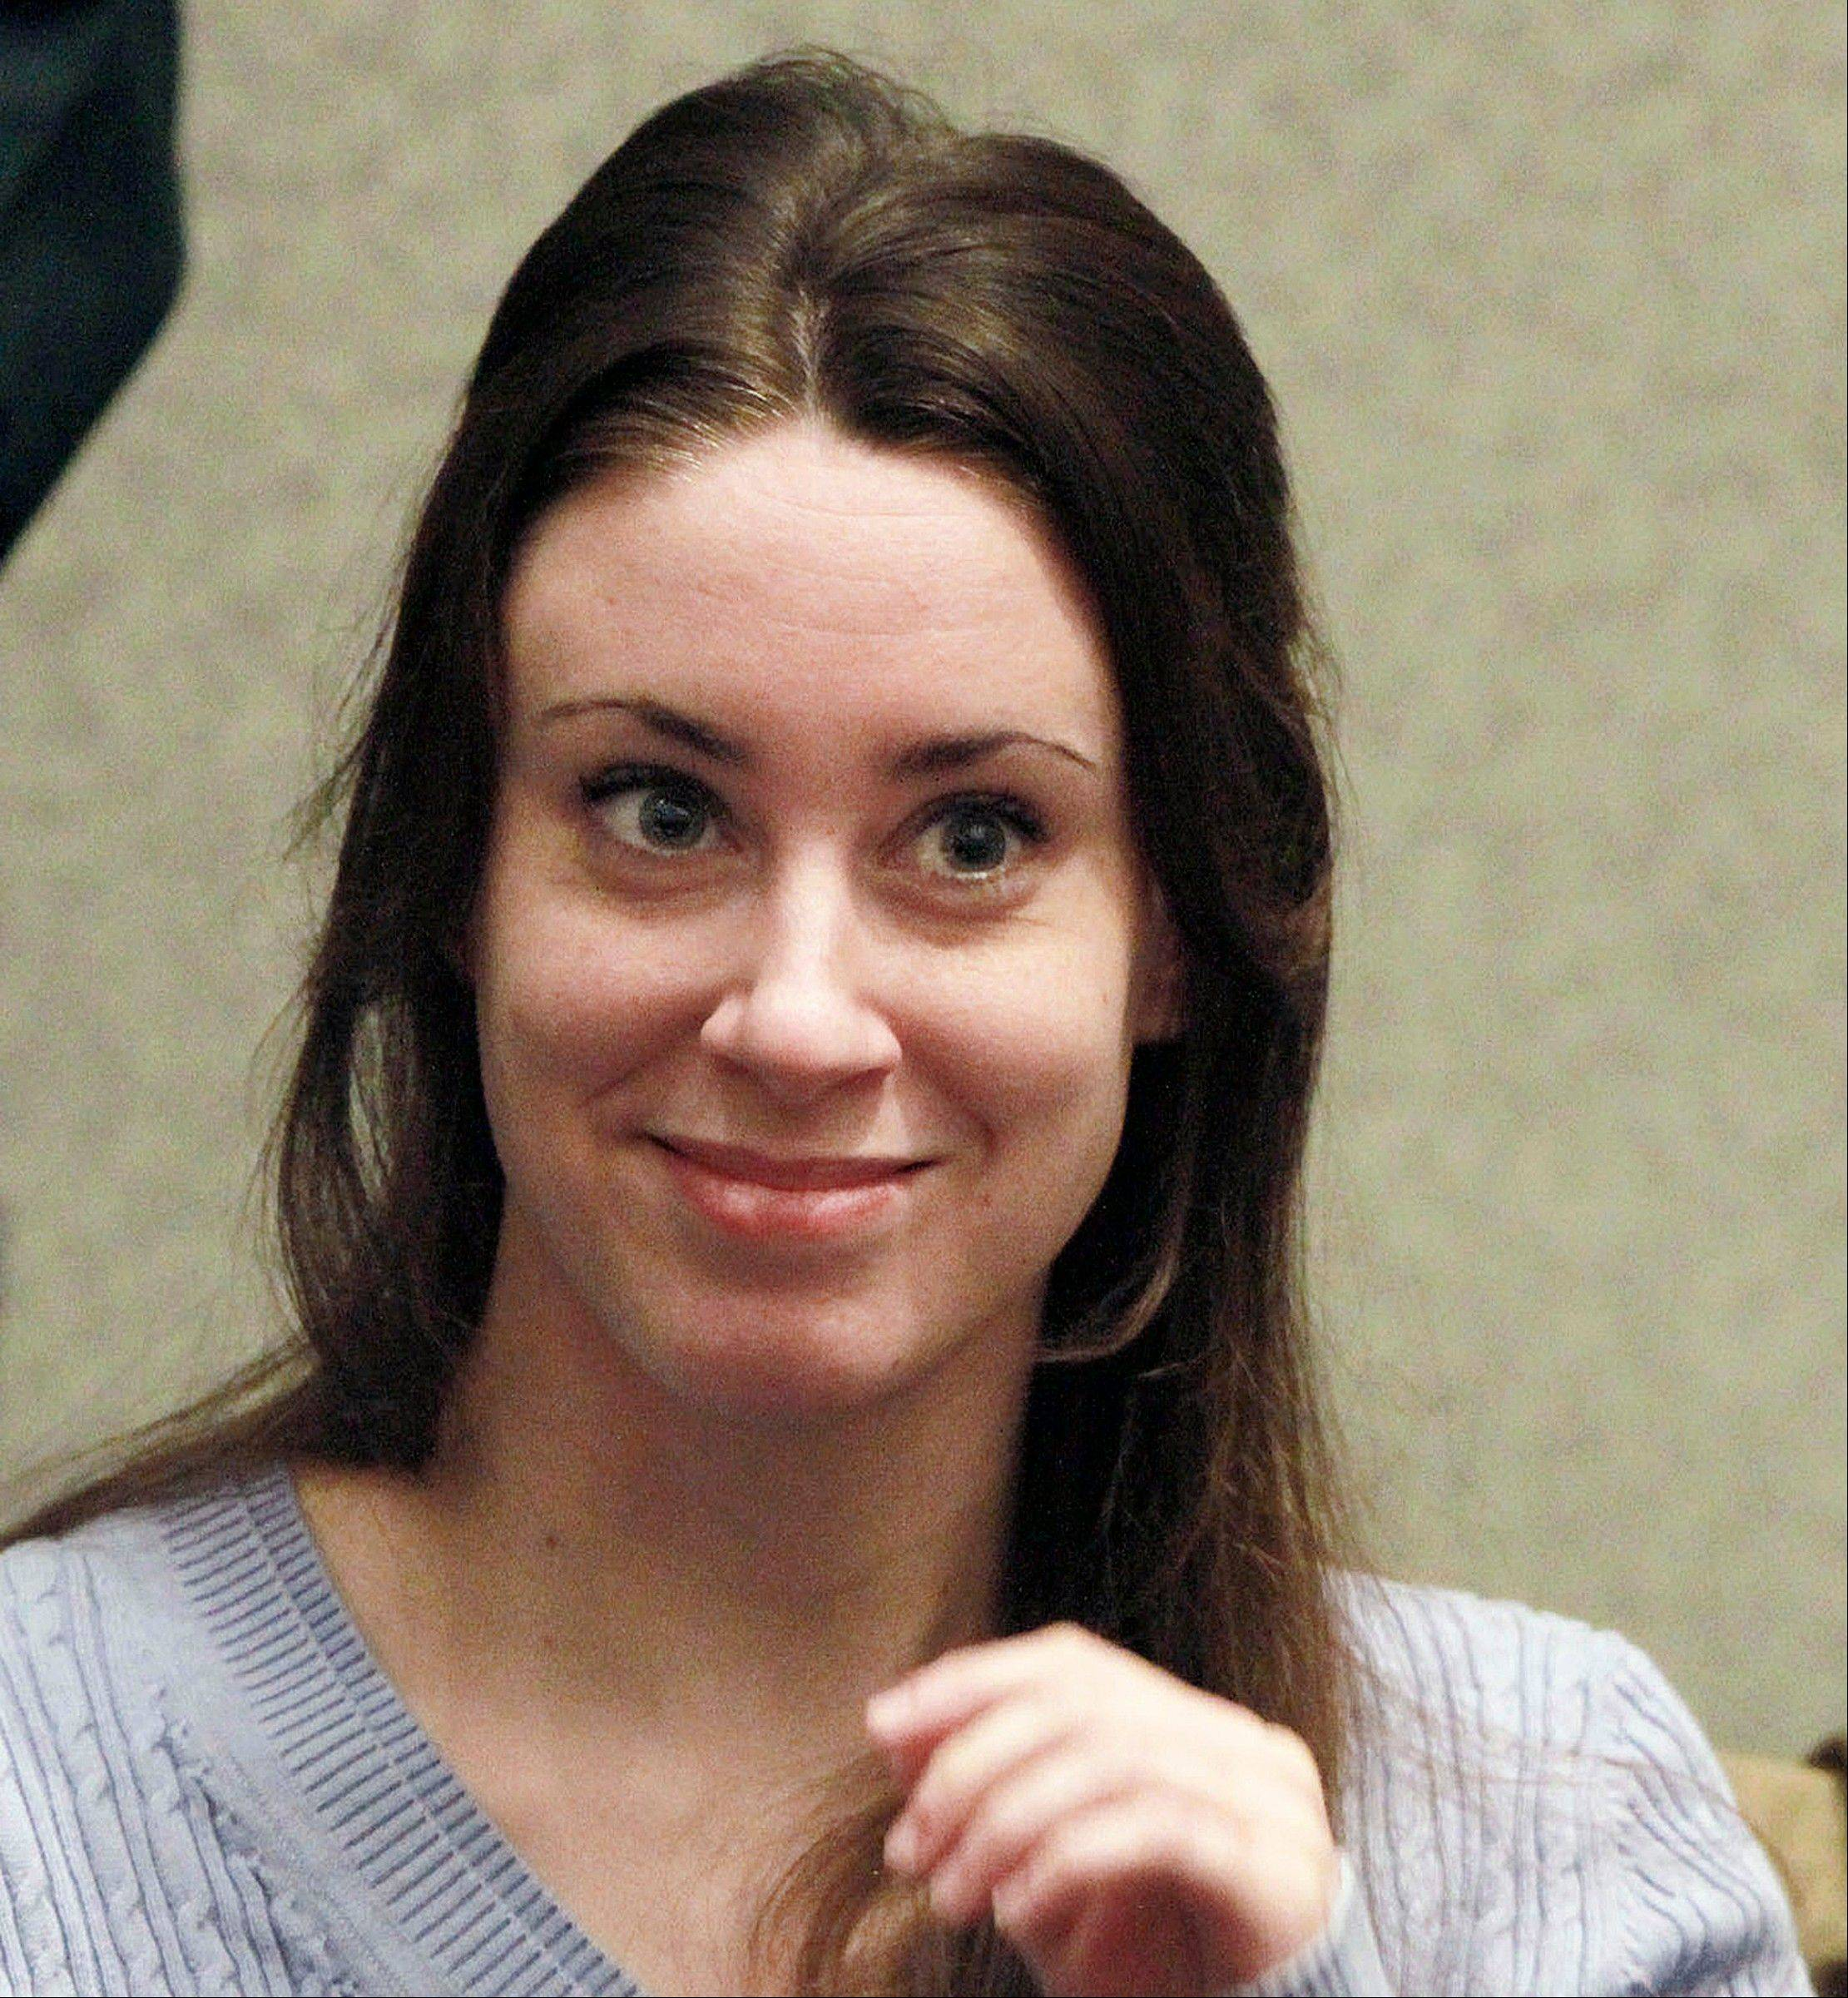 In this July 7, 2011 file photo, Casey Anthony smiles before the start of her sentencing hearing in Orlando, Fla. Casey Anthony has filed for bankruptcy in Florida, Friday, Jan. 25, 2013, claiming about $1,100 in assets and $792,000 in liabilities.